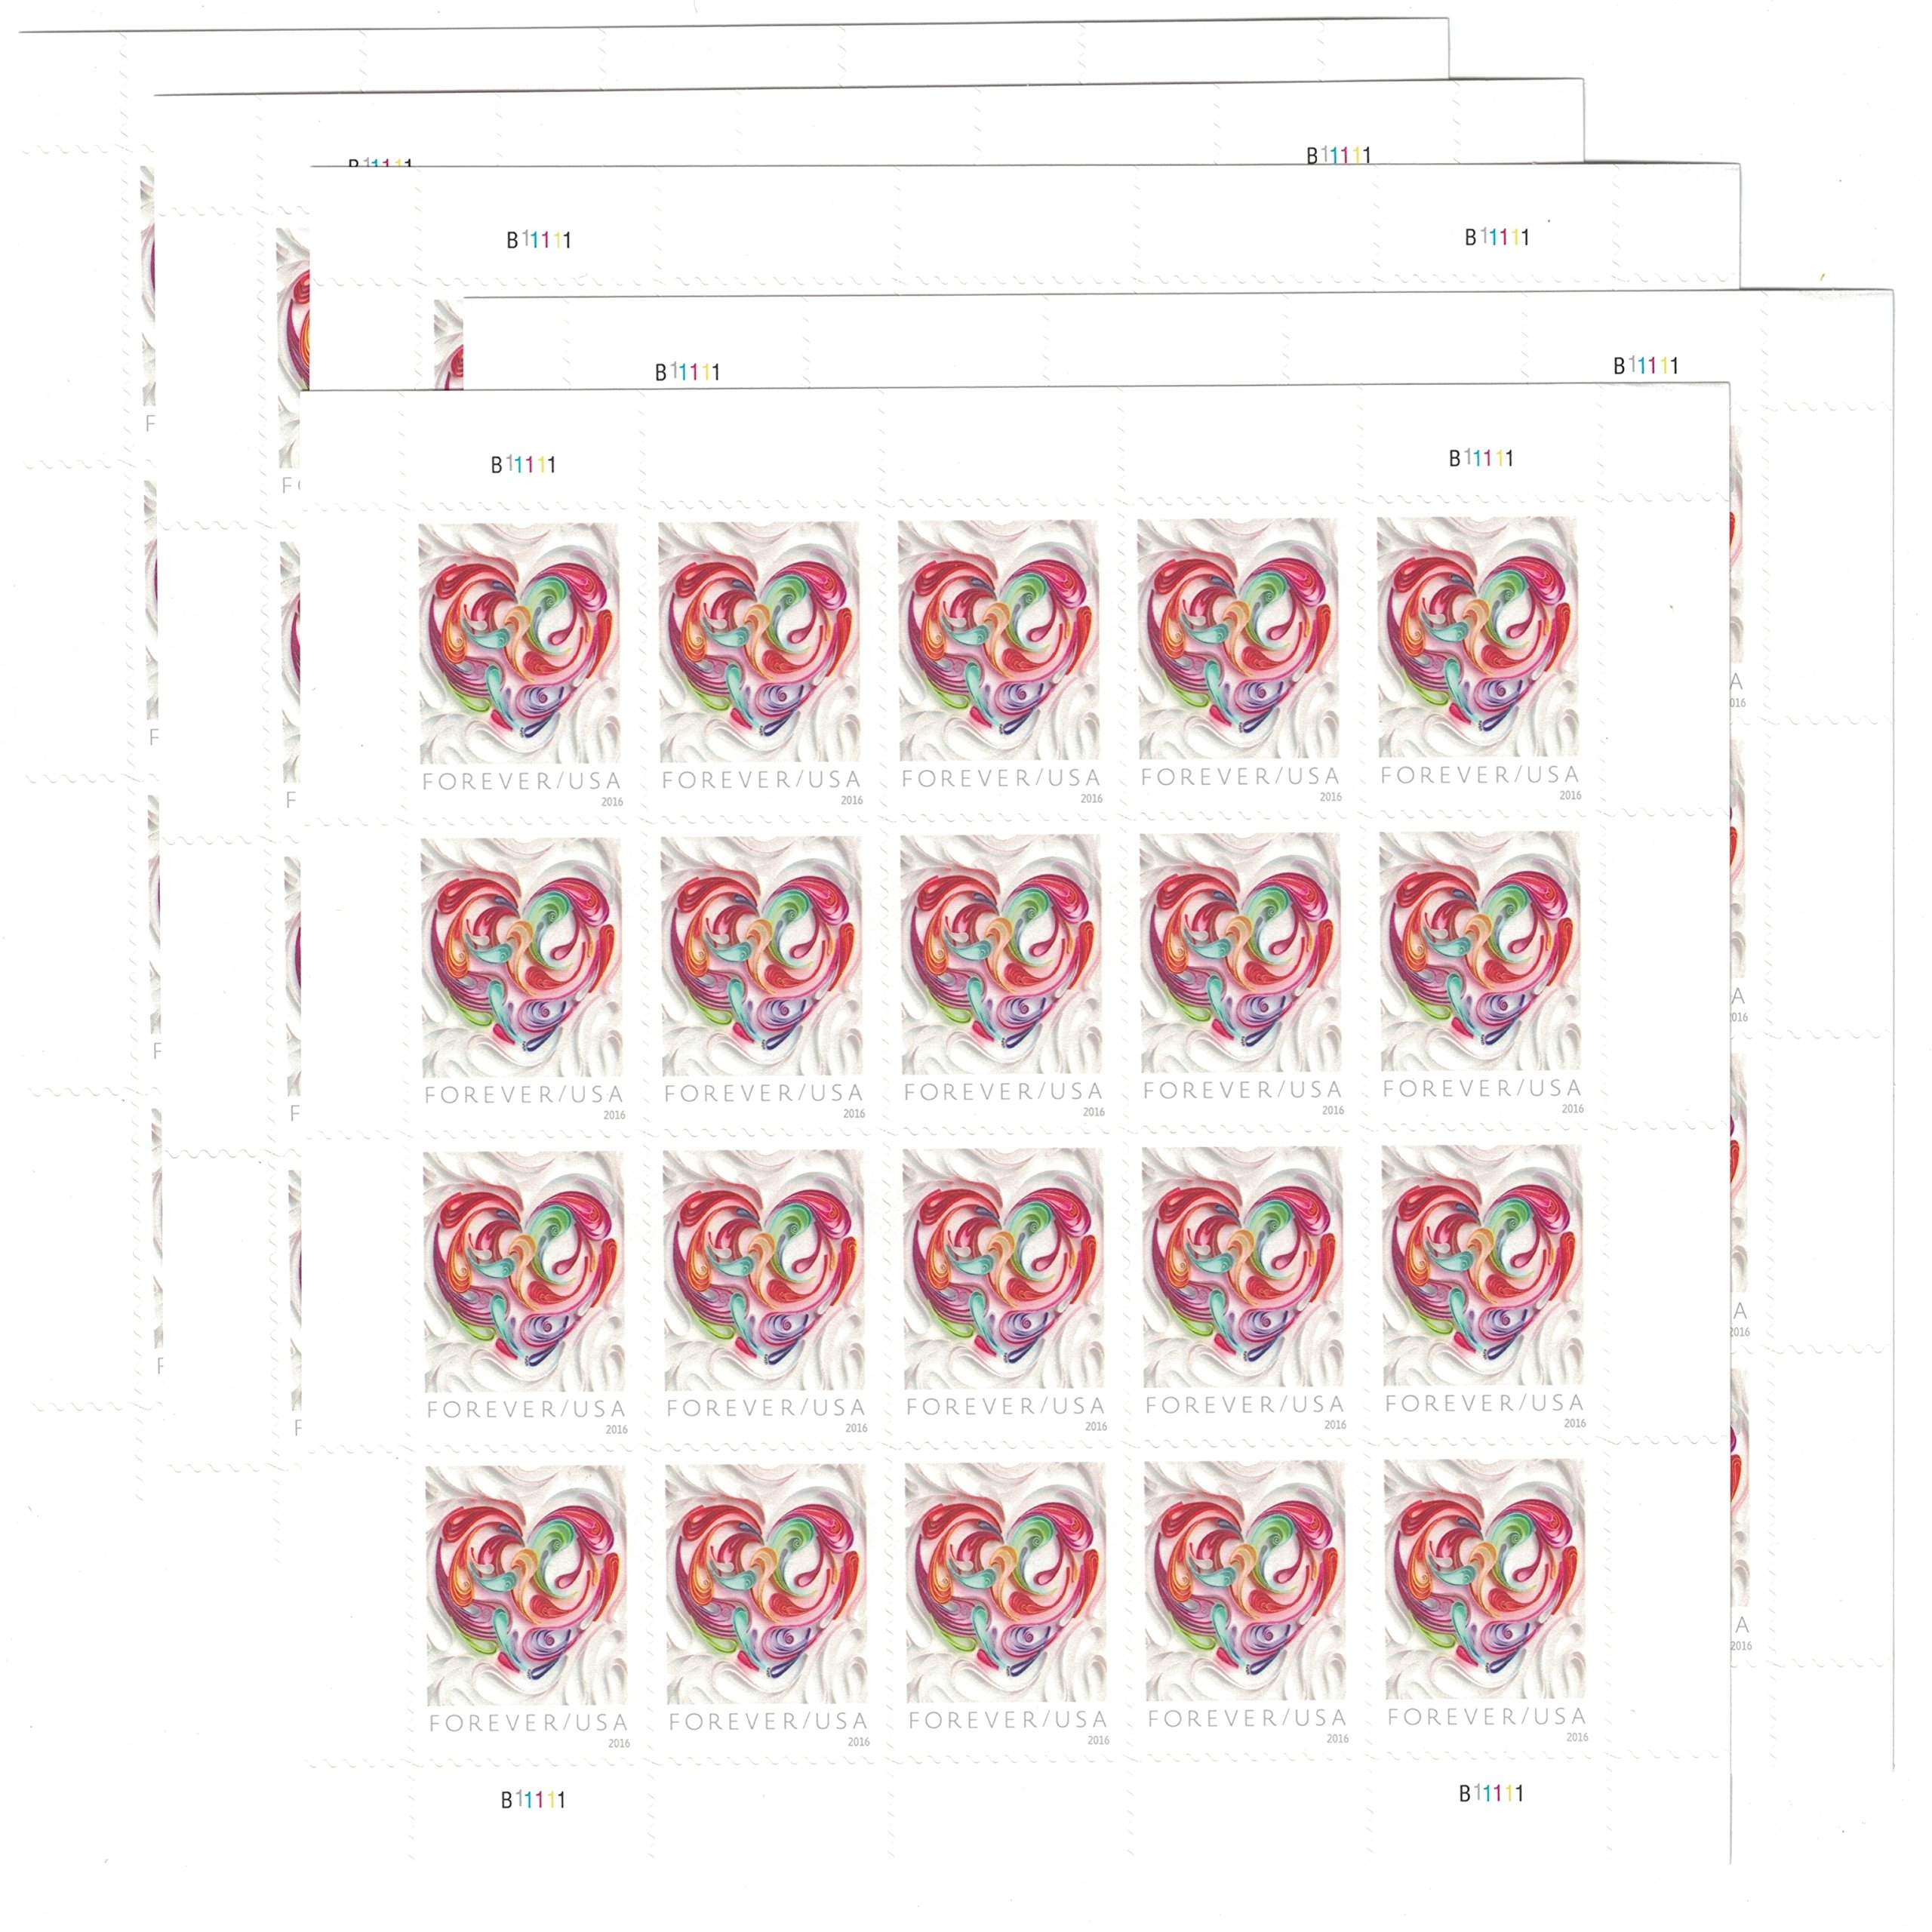 5 Sheets of 20 Quilled Paper Heart Forever USPS Stamps